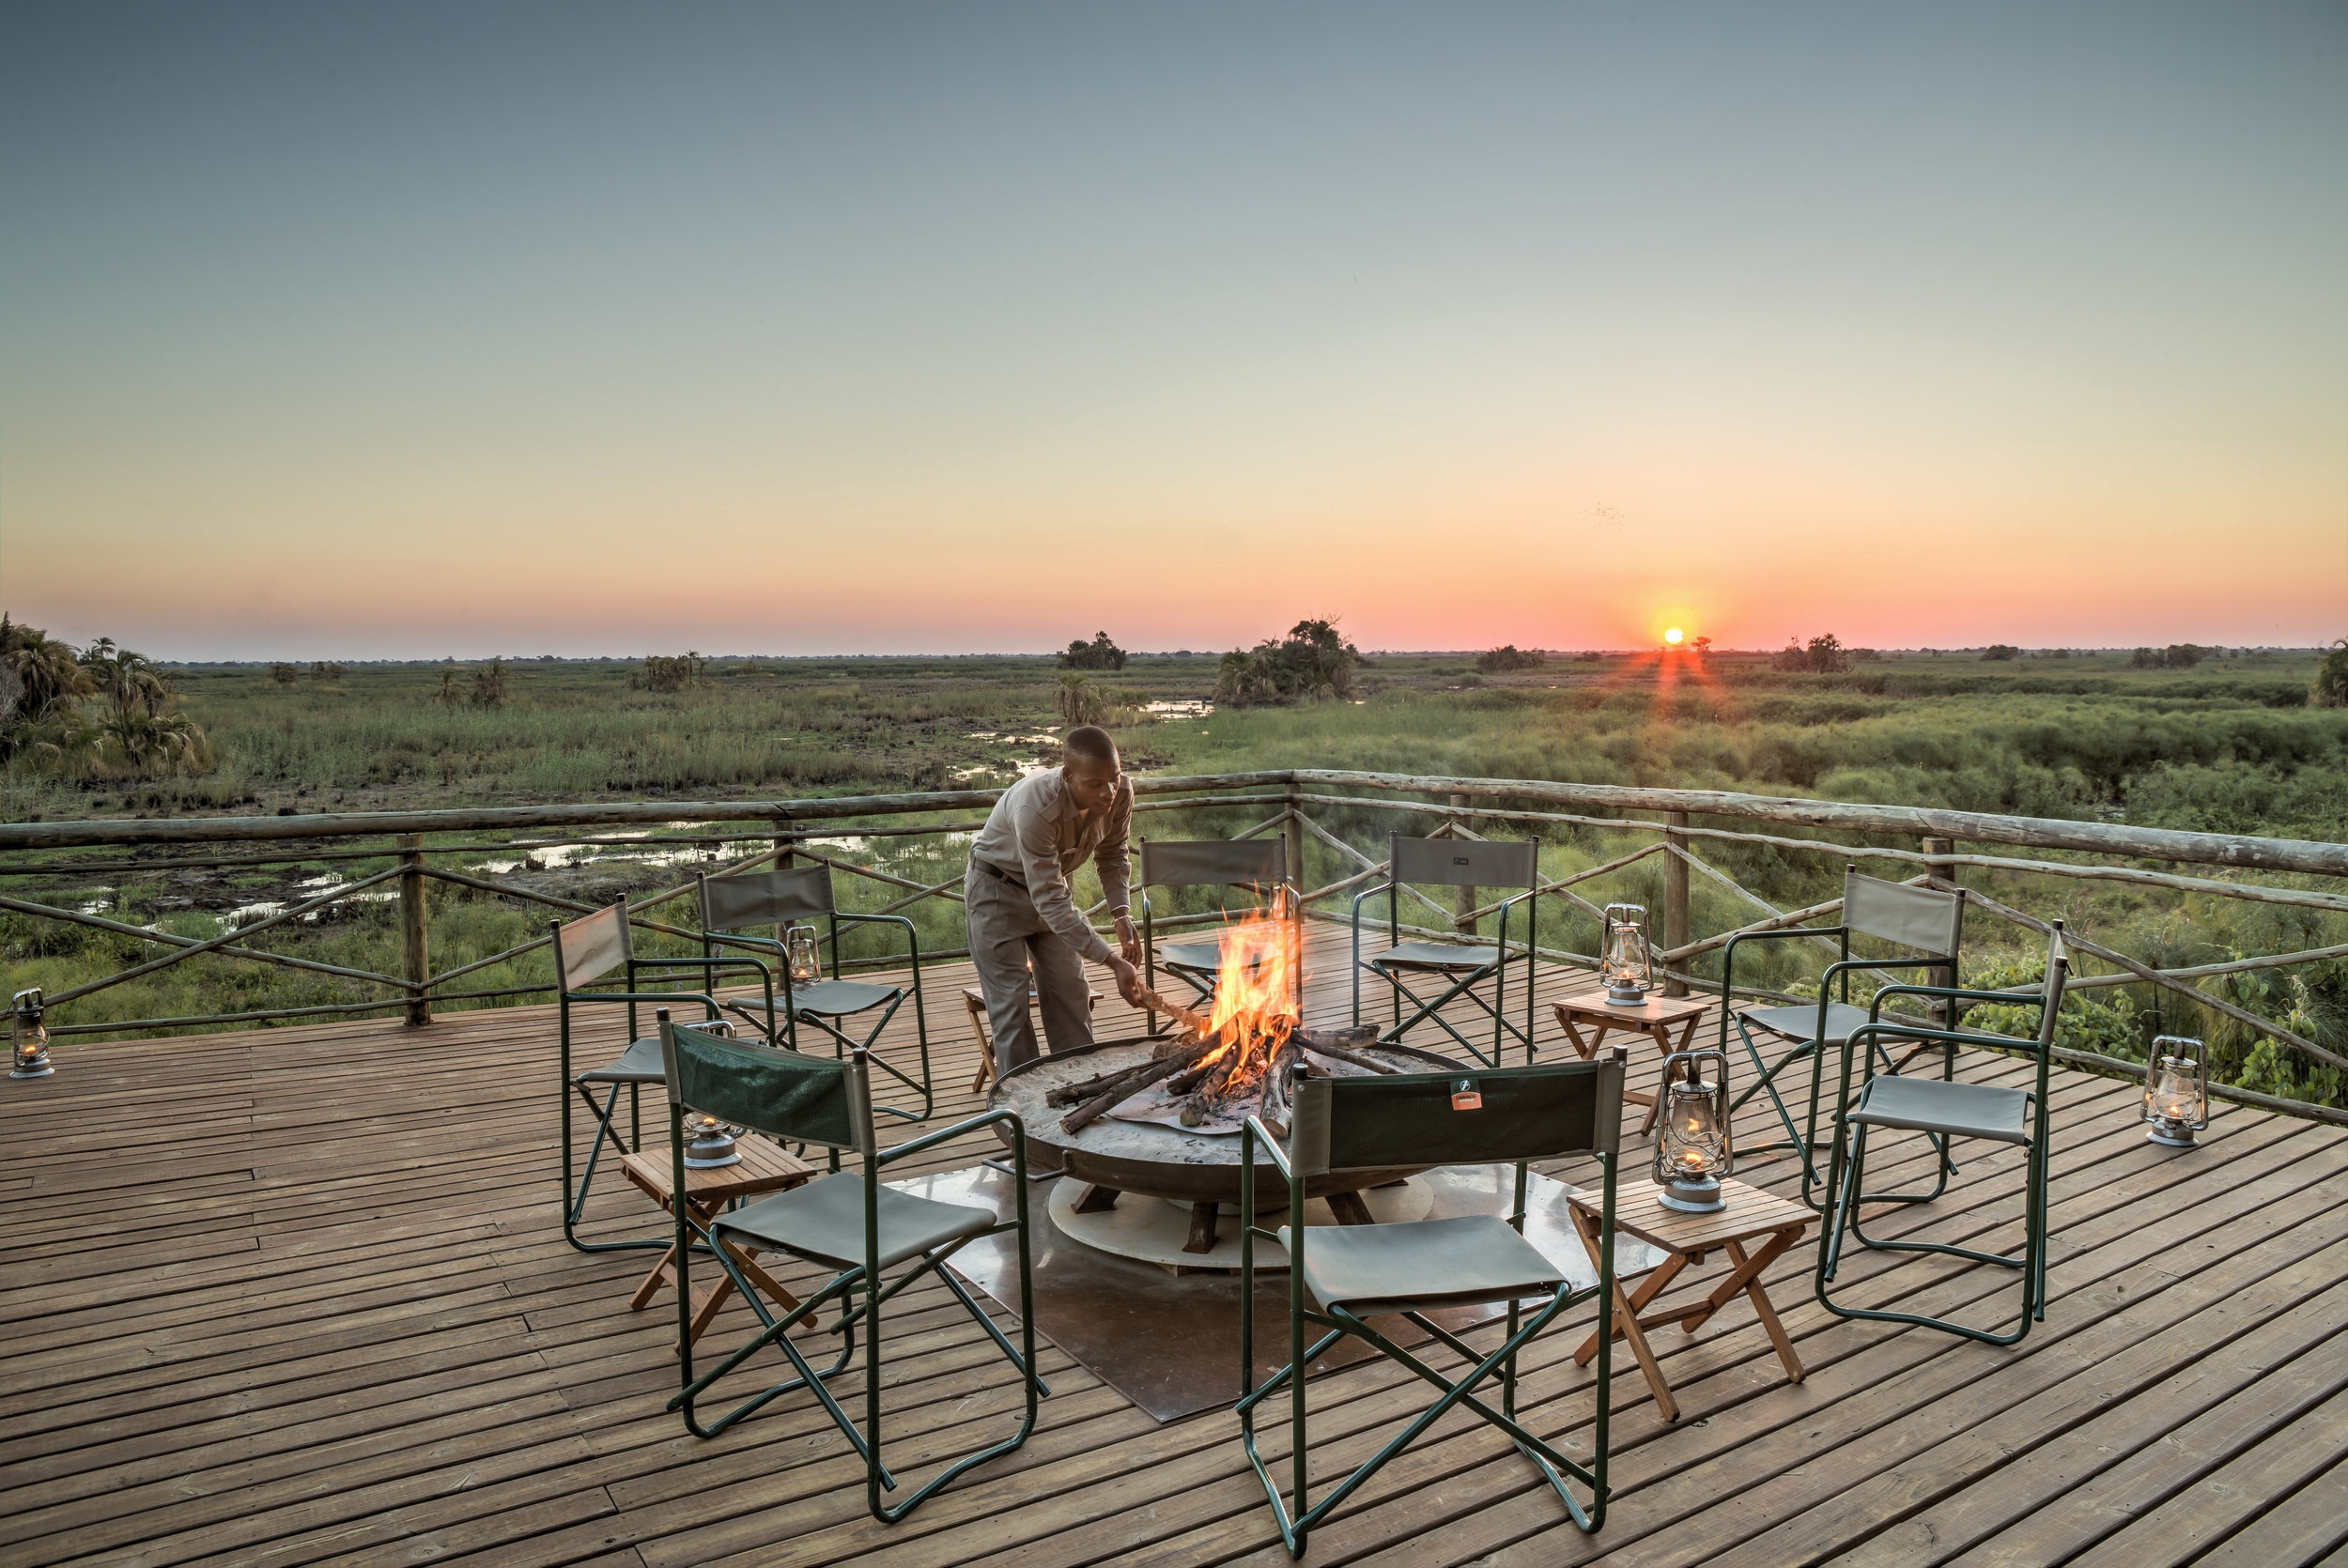 EXPLORE setari & THE OKAVANGO -